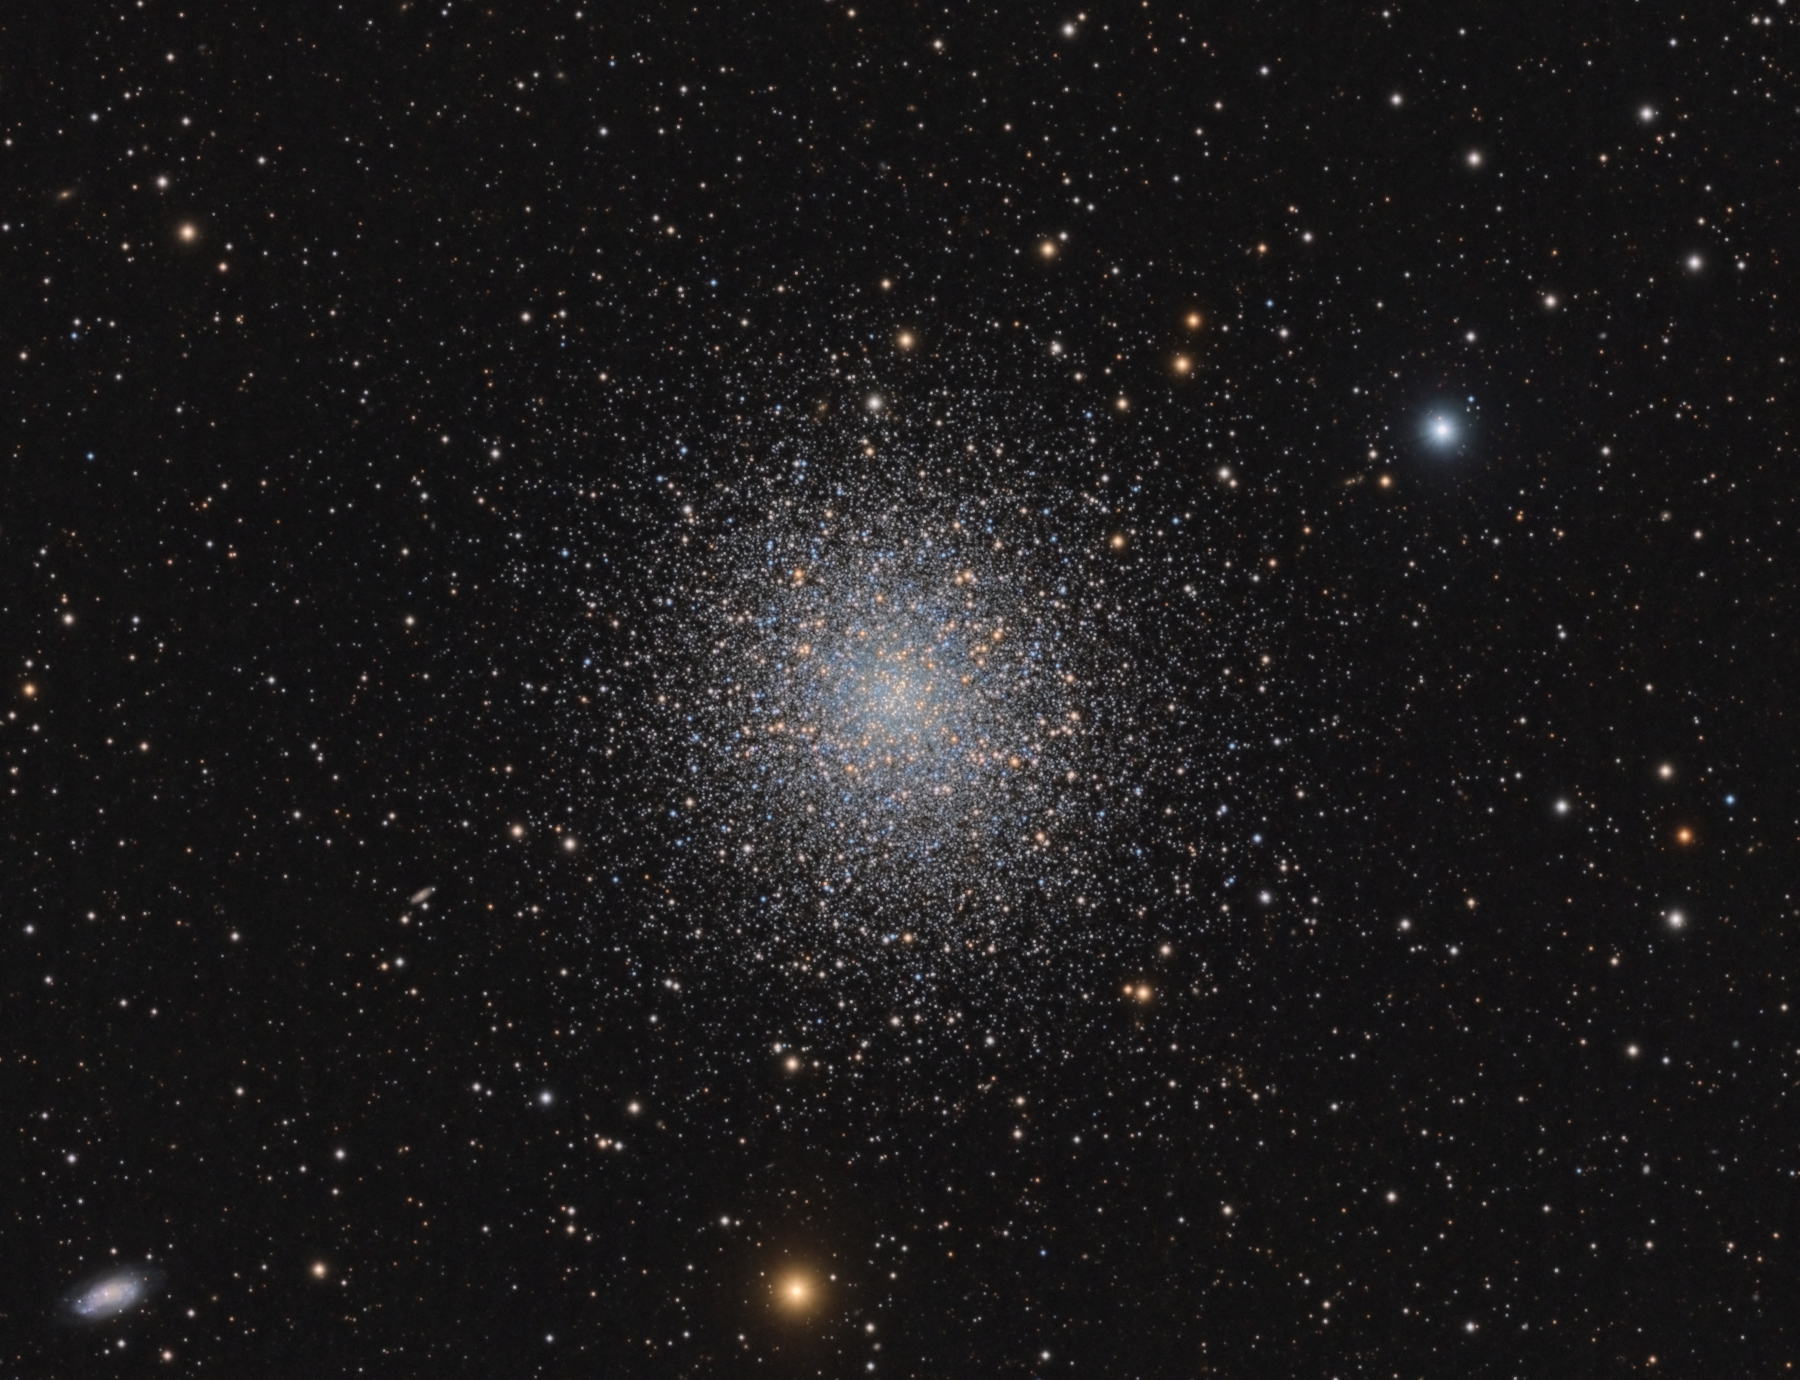 M13_detail.jpg -          texto_bright    Object:M13   Date:February - May 2012   Observingsite: FNO (Fosca Nit Observatory, Àger)   Telescope: TakahashiTOA-150  @ f/7.3 on EM-400 mount   Camera:SBIG STL-11000M  @ -10/-20C   Filters: Astrodon RGB   Exposure:23 x 15 min R; 22 x 15 min G; 22 x 15 min B (all unbinned).  Totalexposure: 16 h     Guiding: Camera guide chip     Software:Guide & camera control: CCDSoft. Processing: PixInsight 1.7